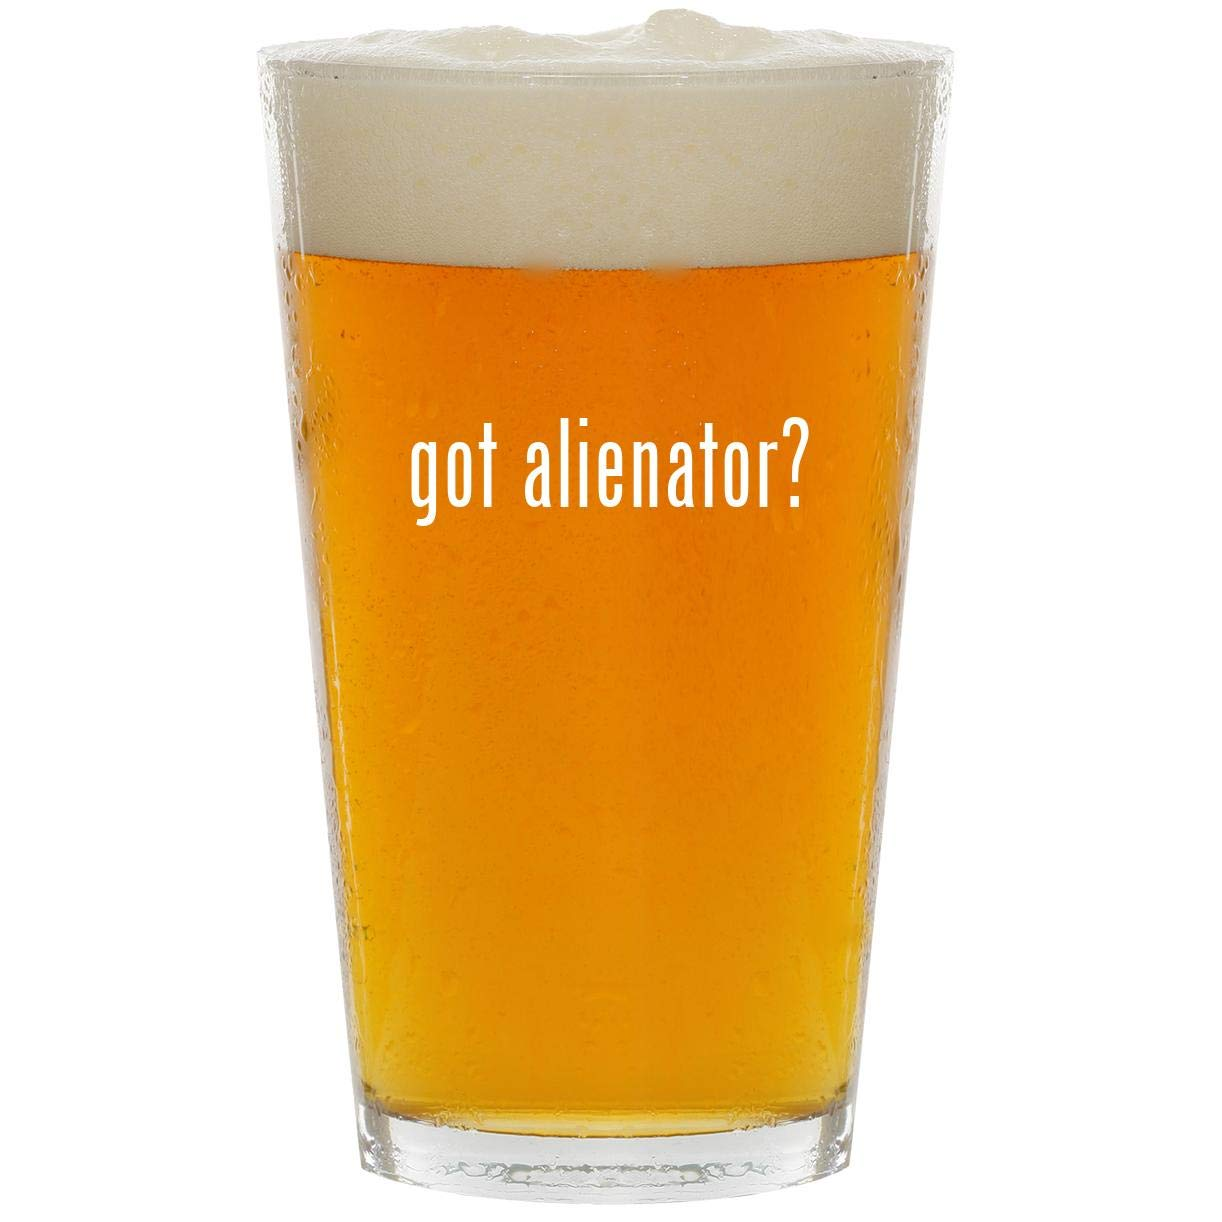 got alienator? - Glass 16oz Beer Pint